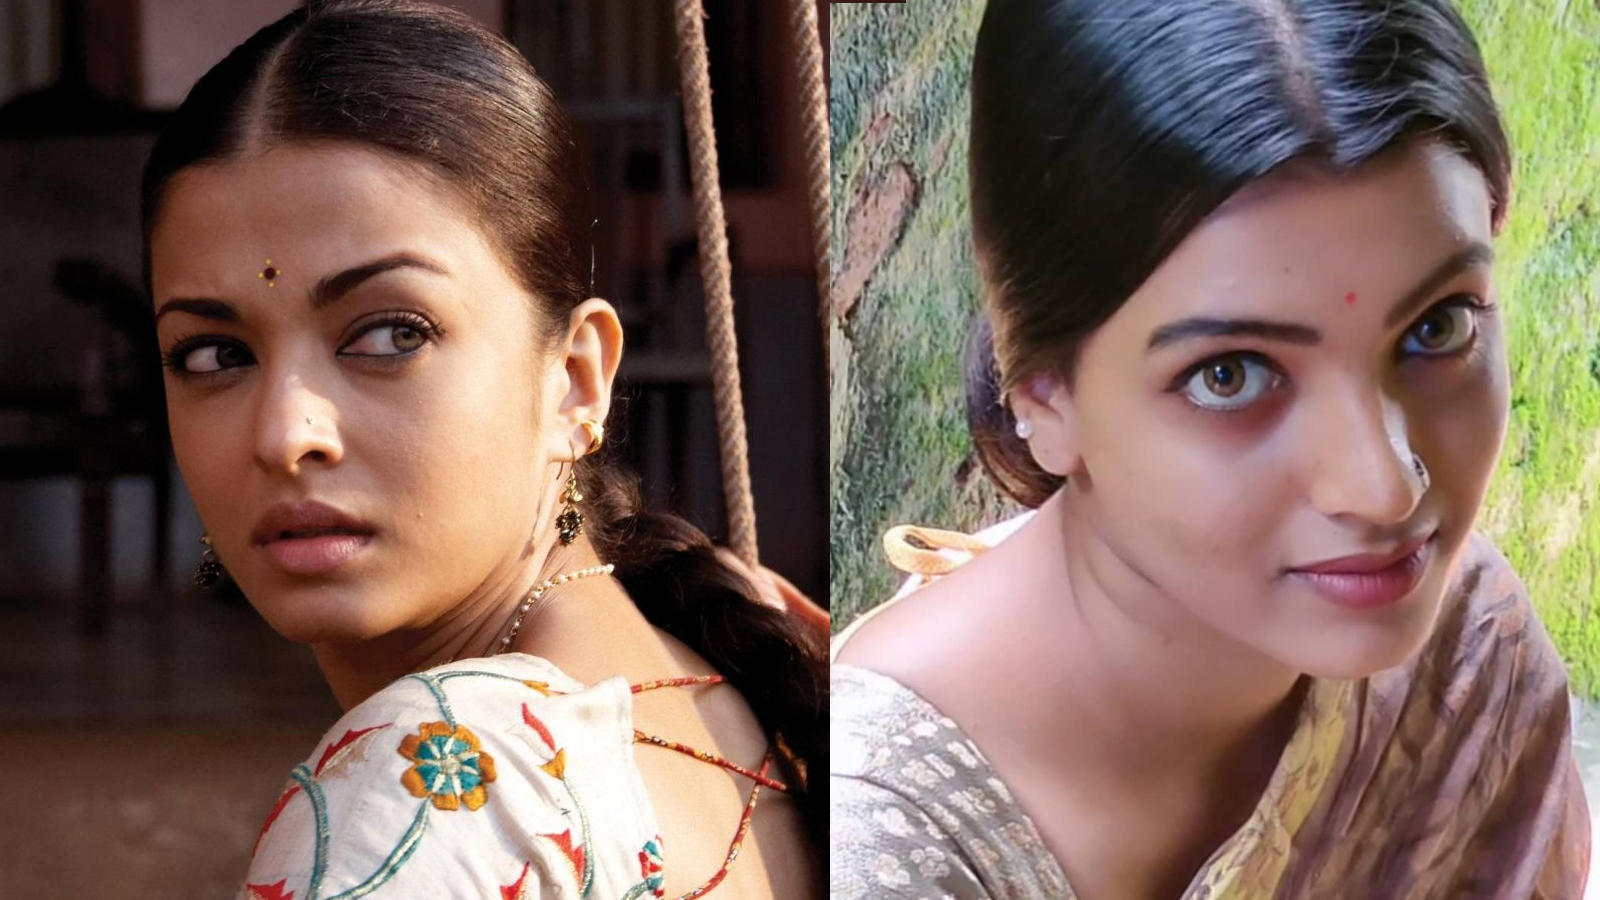 watch-aishwarya-rai-bachchans-doppelganger-nailing-actress-famous-dialogue-and-winning-the-internet-with-her-uncanny-resemblance